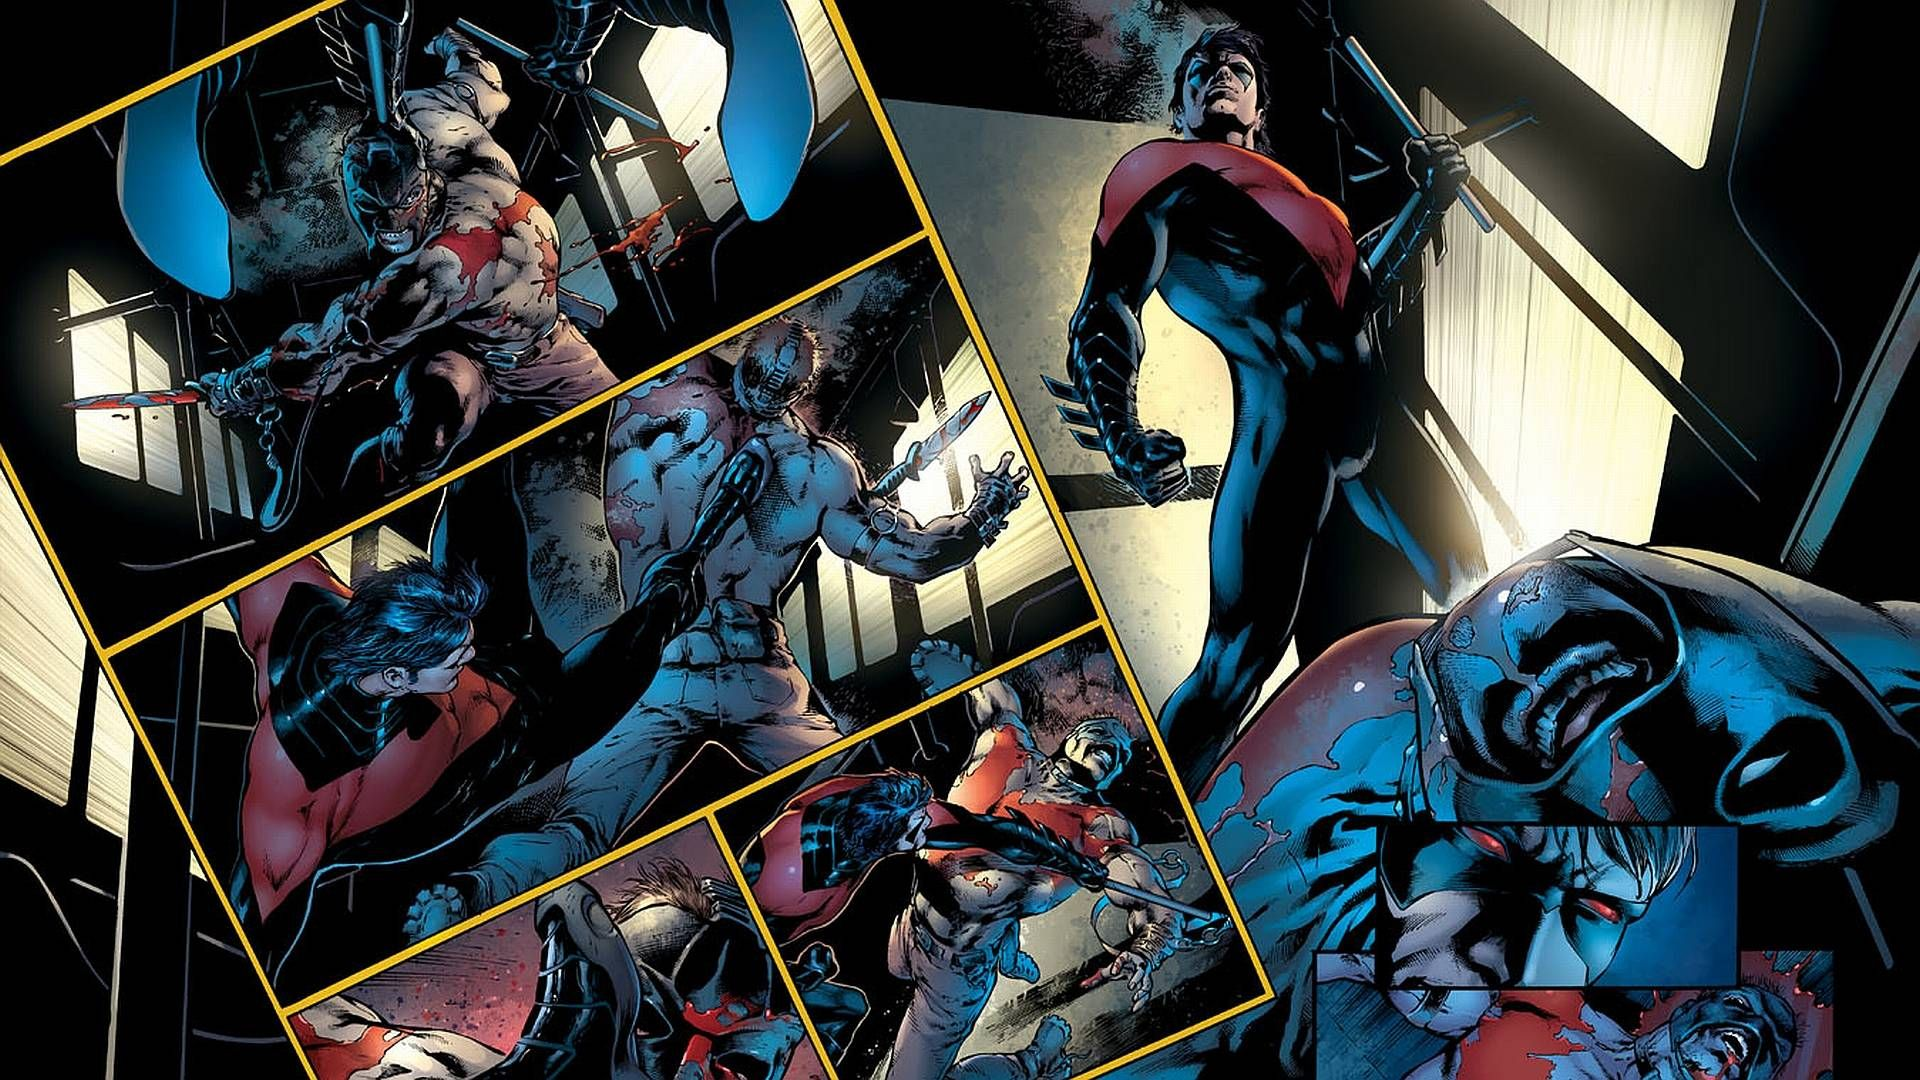 Nightwing New 52 Backgrounds For Desktop Wallpaper 1920x1080